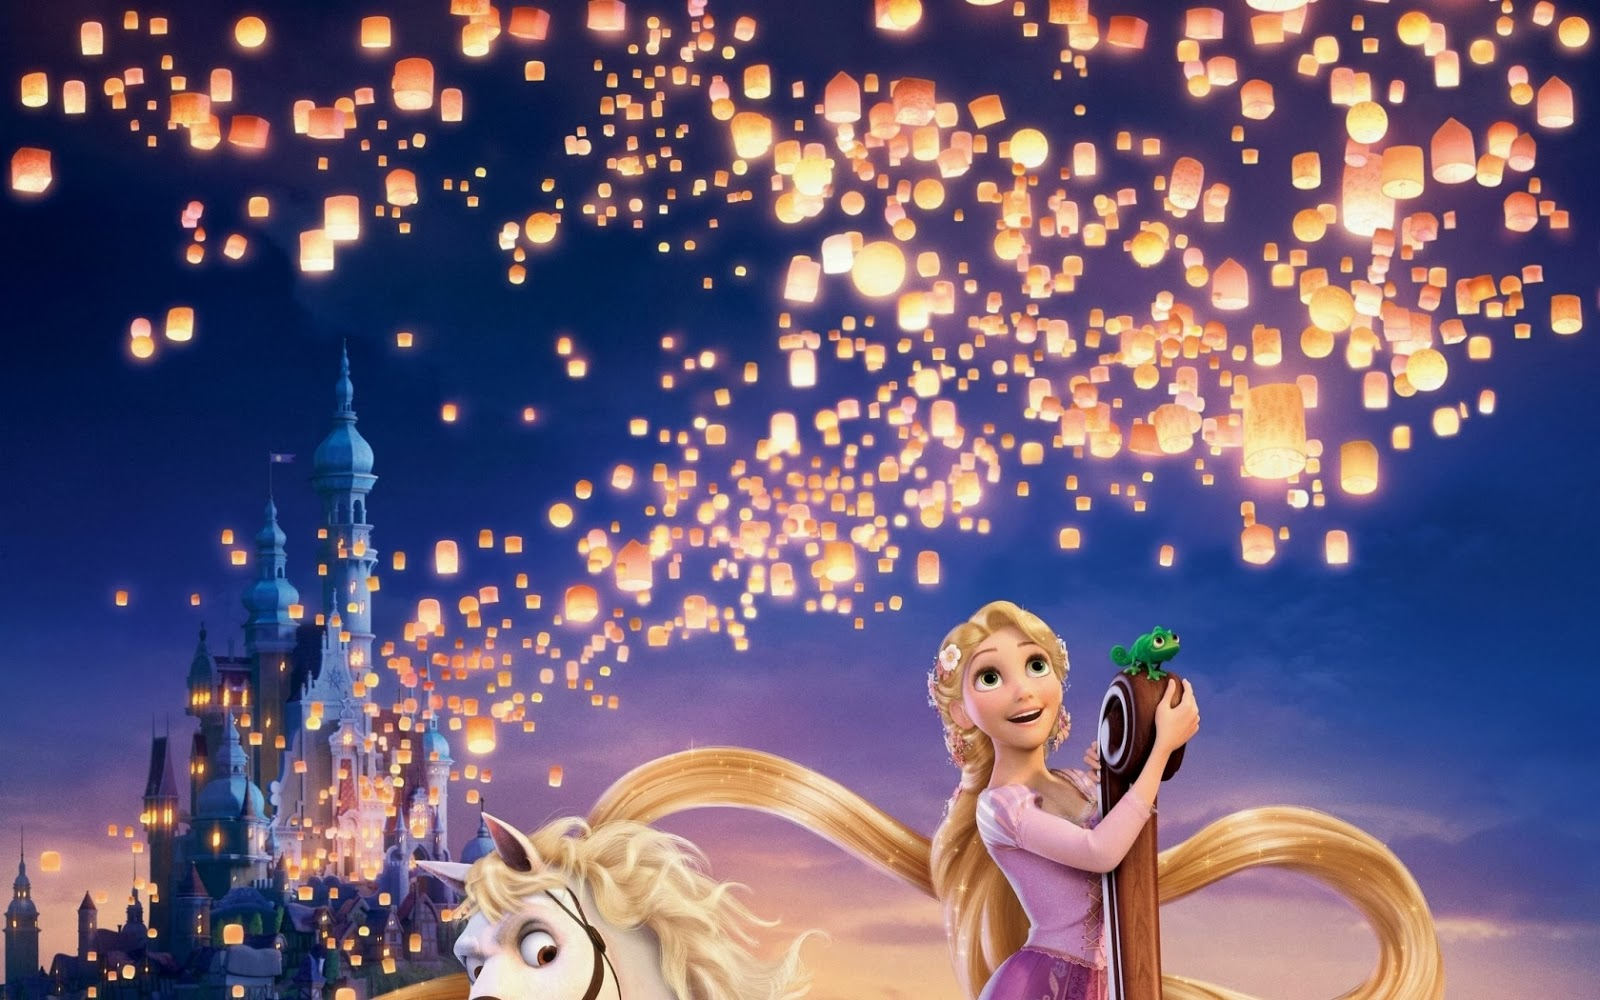 Gallery For gt Tangled Rapunzel Wallpapers 1600x1000